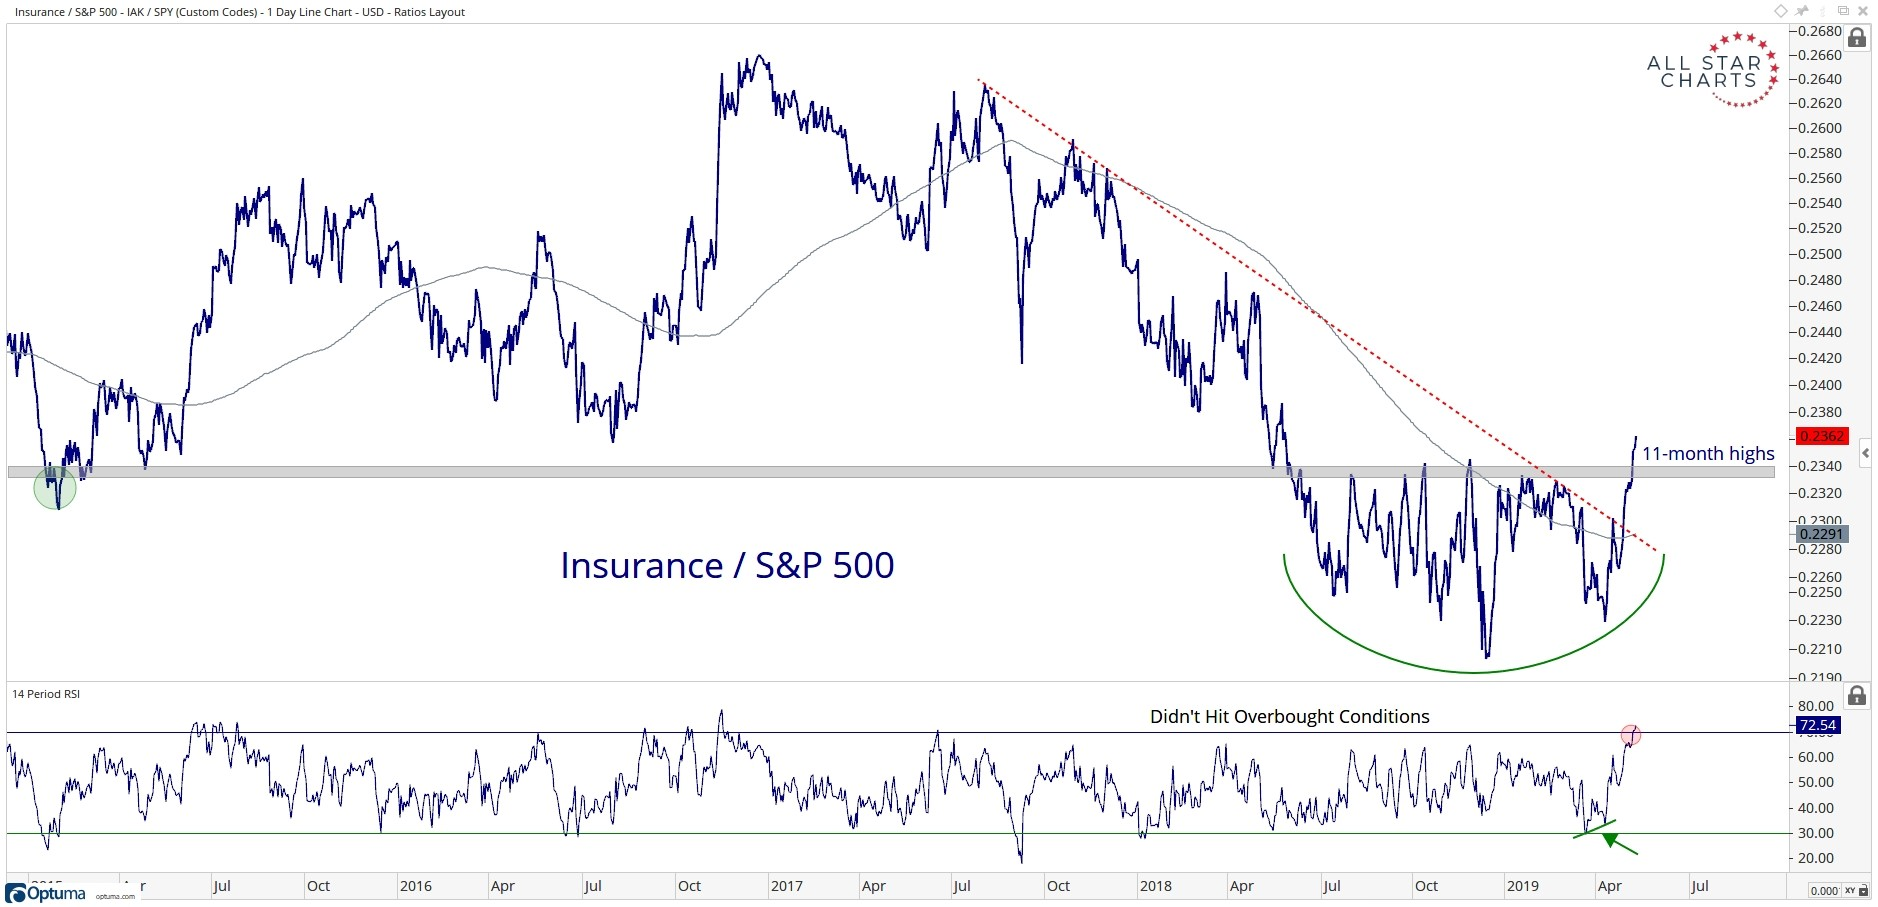 The ratio of the iShares U.S. Insurance ETF (NYSEArca: IAK) to the SPDR S&P 500 ETF (NYSEArca: SPY), showing the performance of the insurance subsector relative to  the broad market.